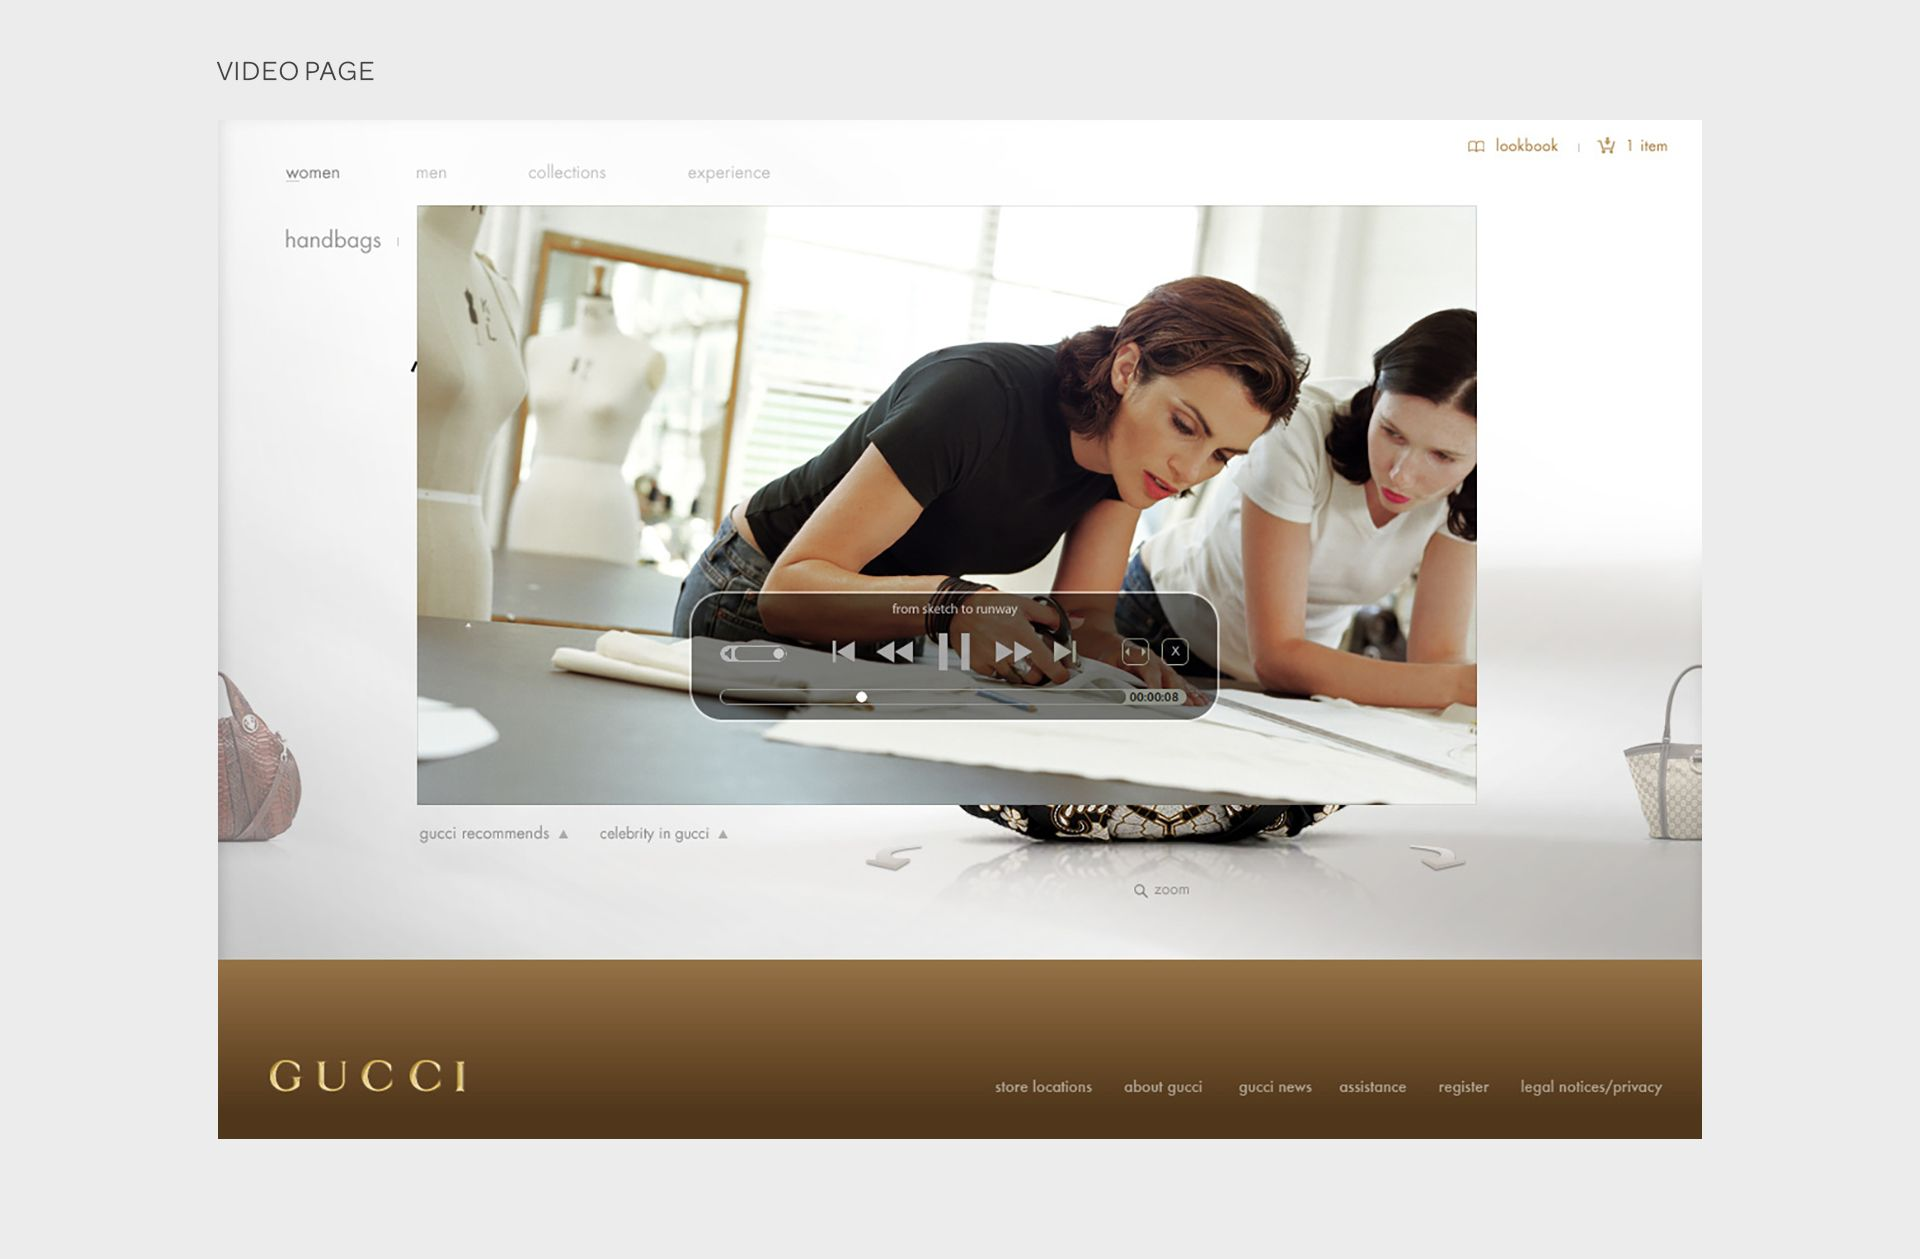 GUCCI-Video_5-960x630@2x